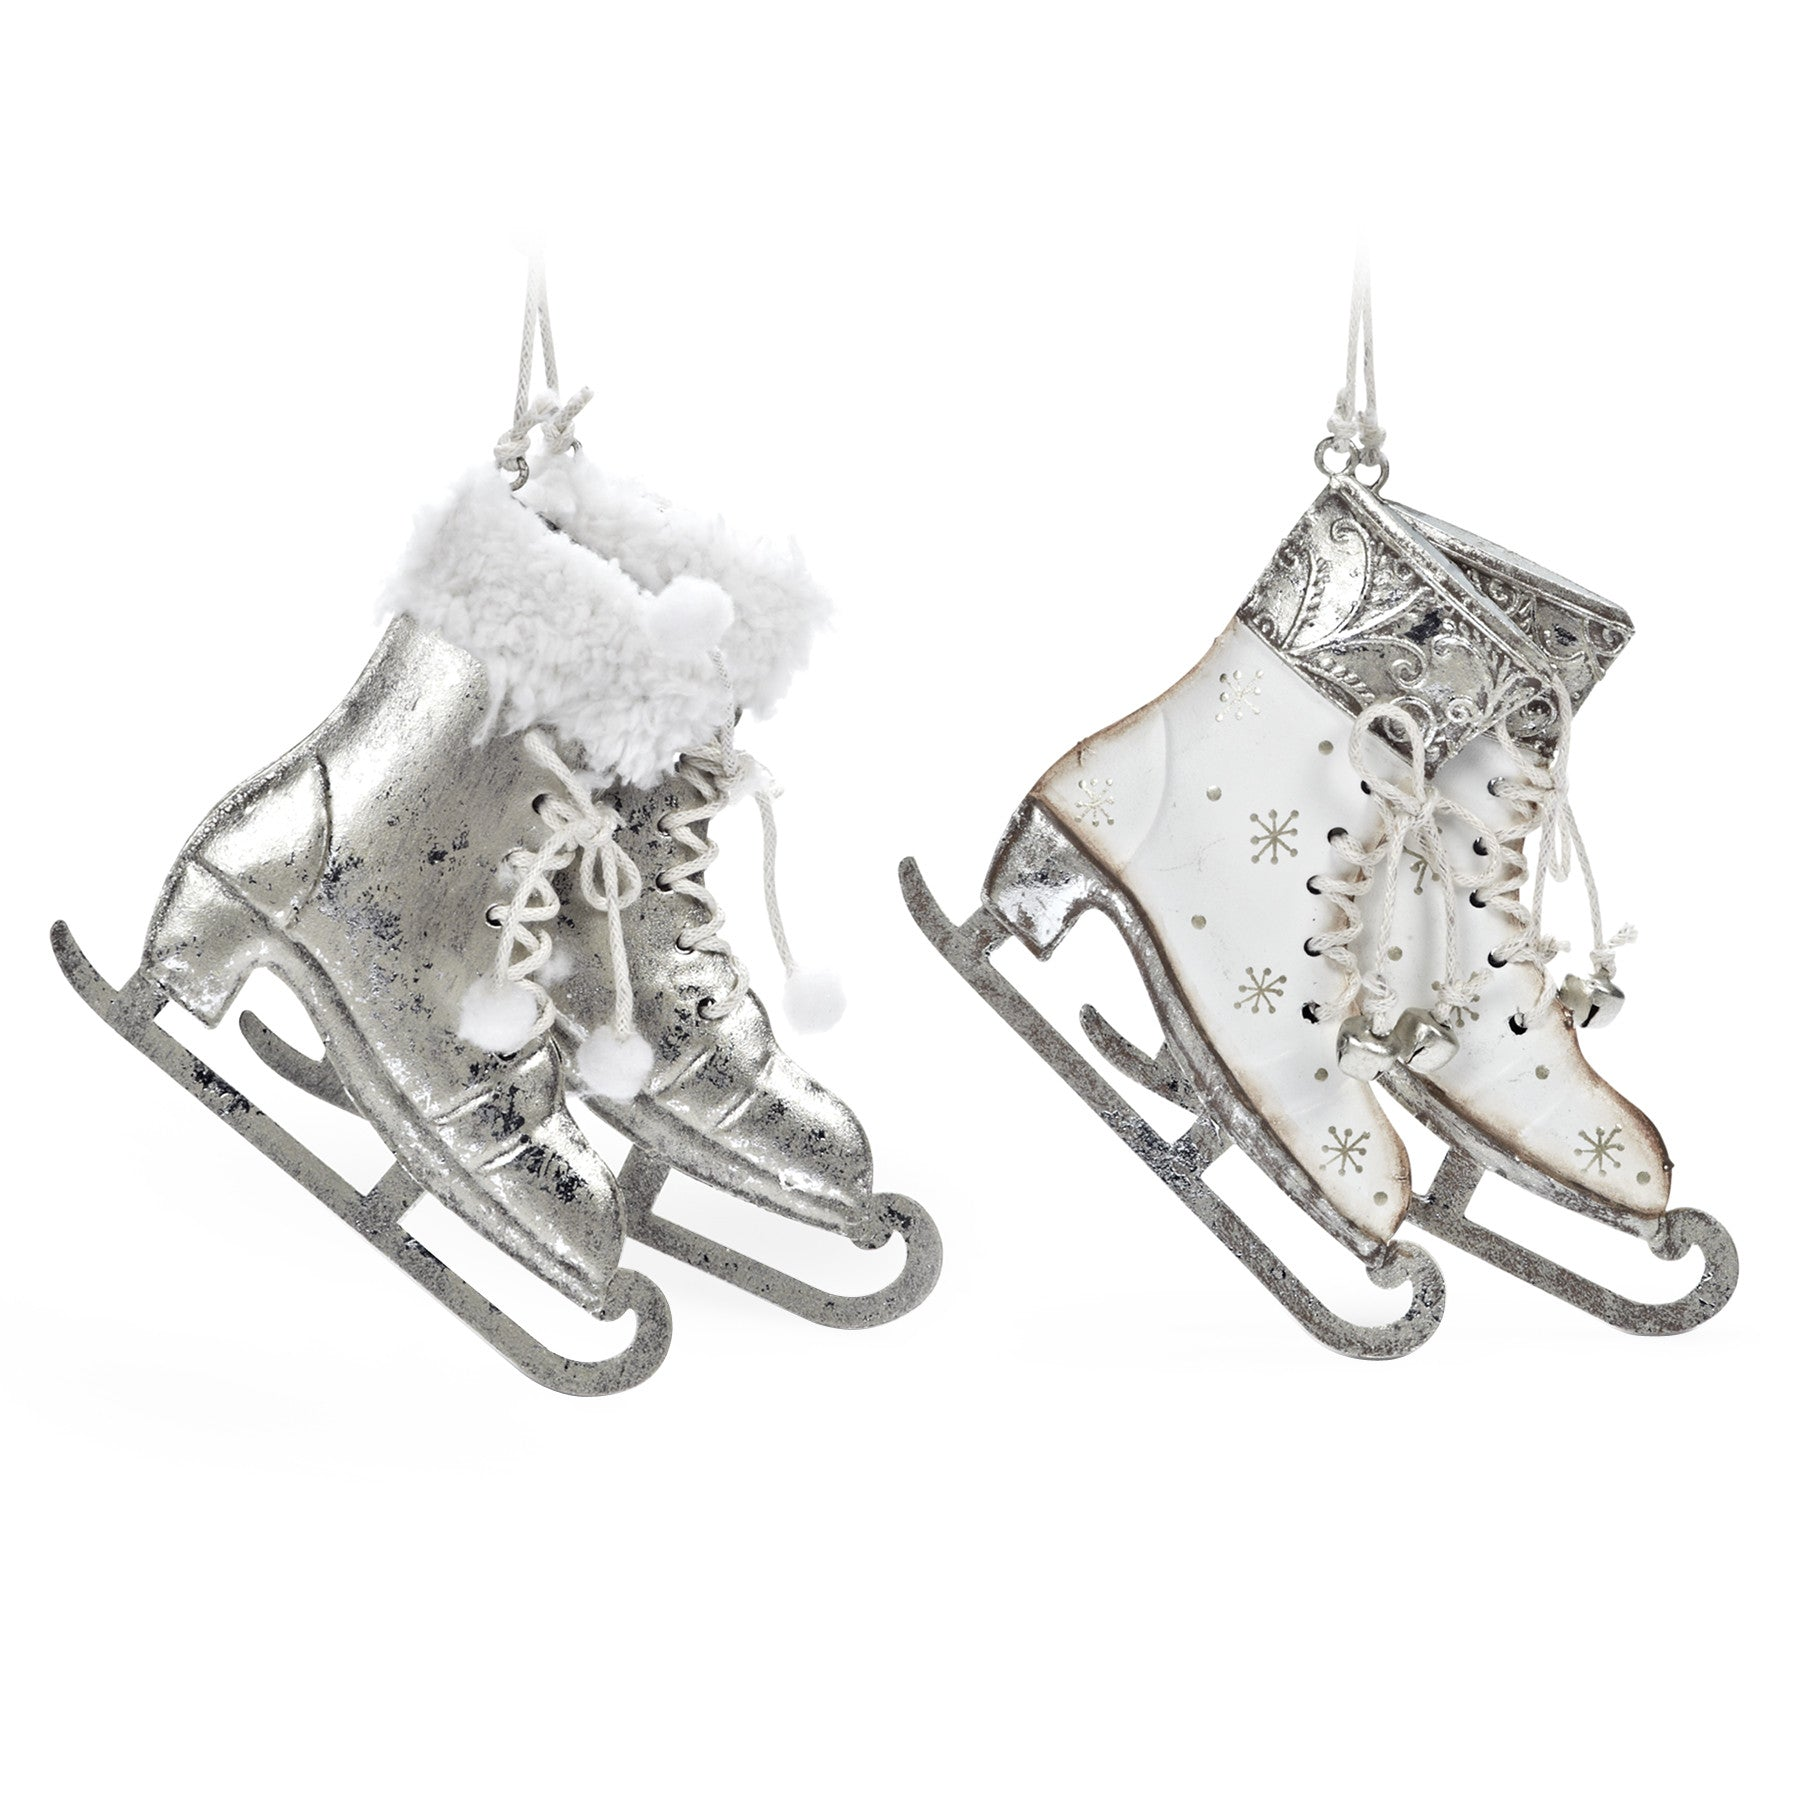 Skate Ornaments and Decorations | Putti Christmas - Putti Fine ...